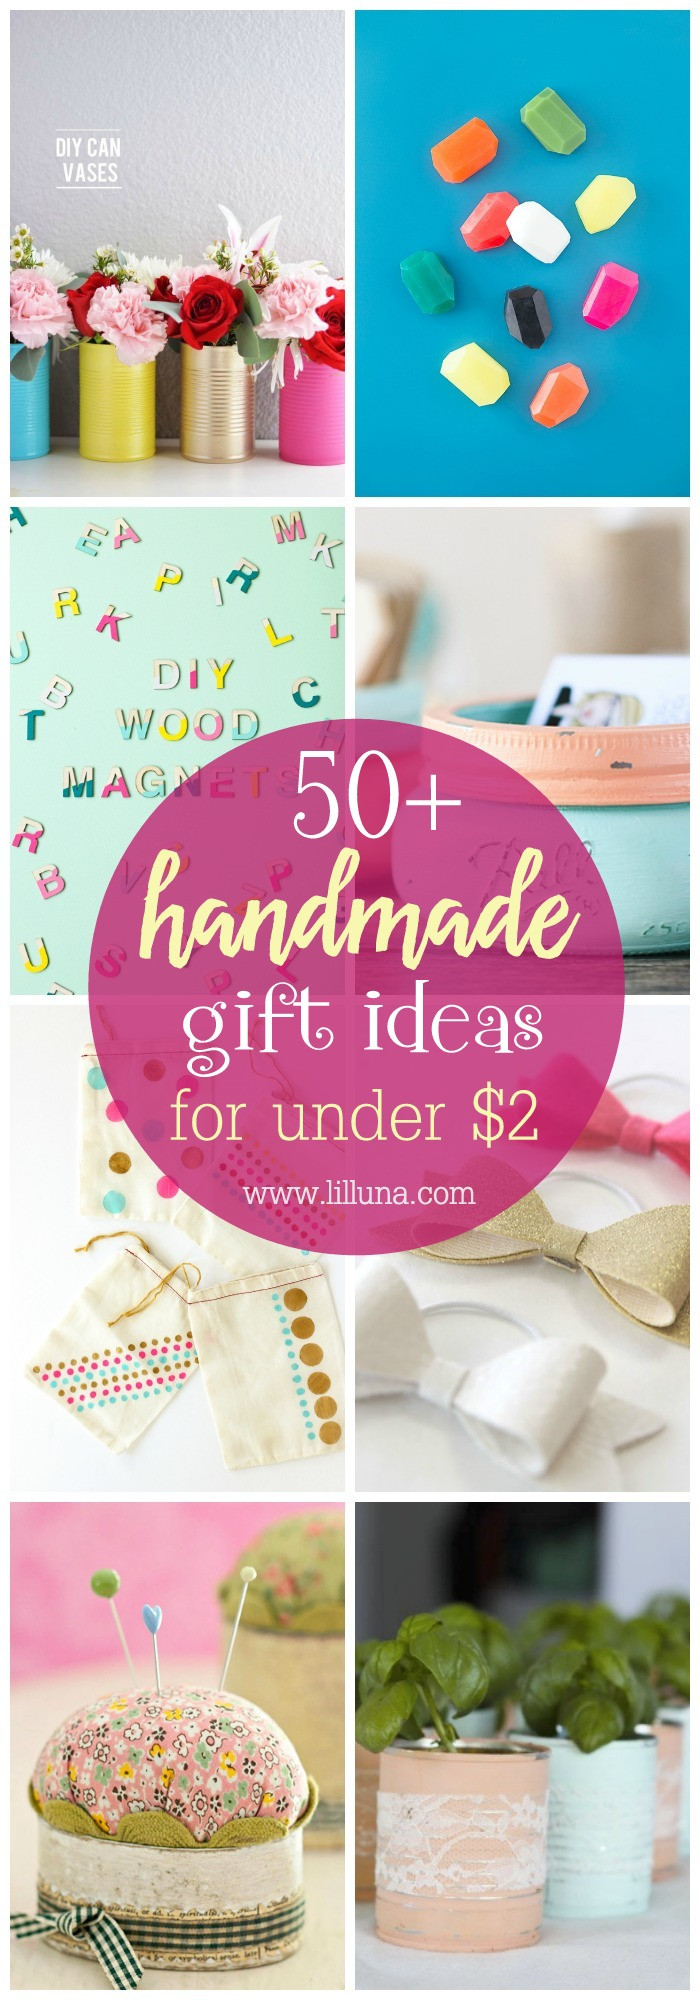 Best ideas about Cheap Gift Ideas . Save or Pin Inexpensive Handmade Gift Ideas Now.